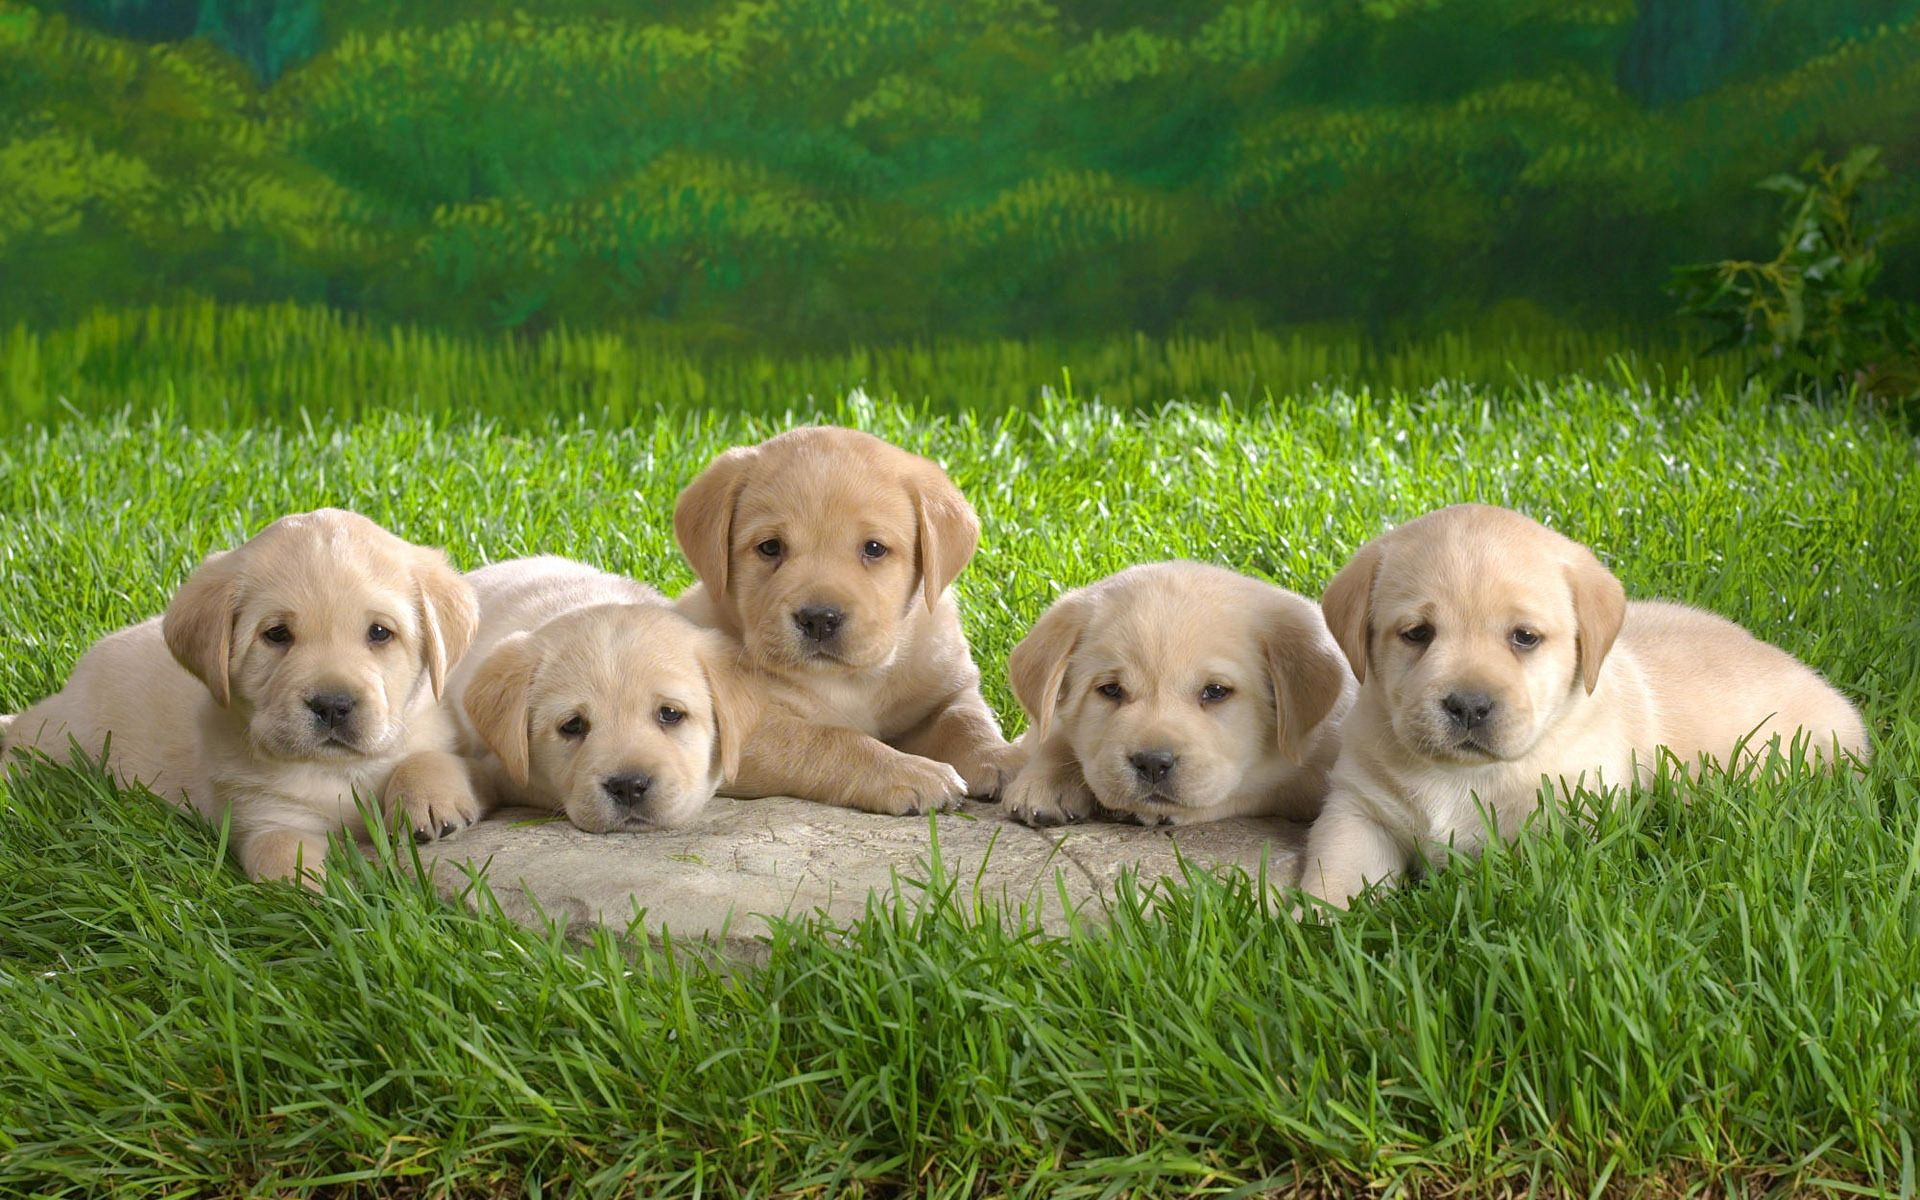 129135 download wallpaper Animals, Grass, Family, Labradors, Puppies screensavers and pictures for free